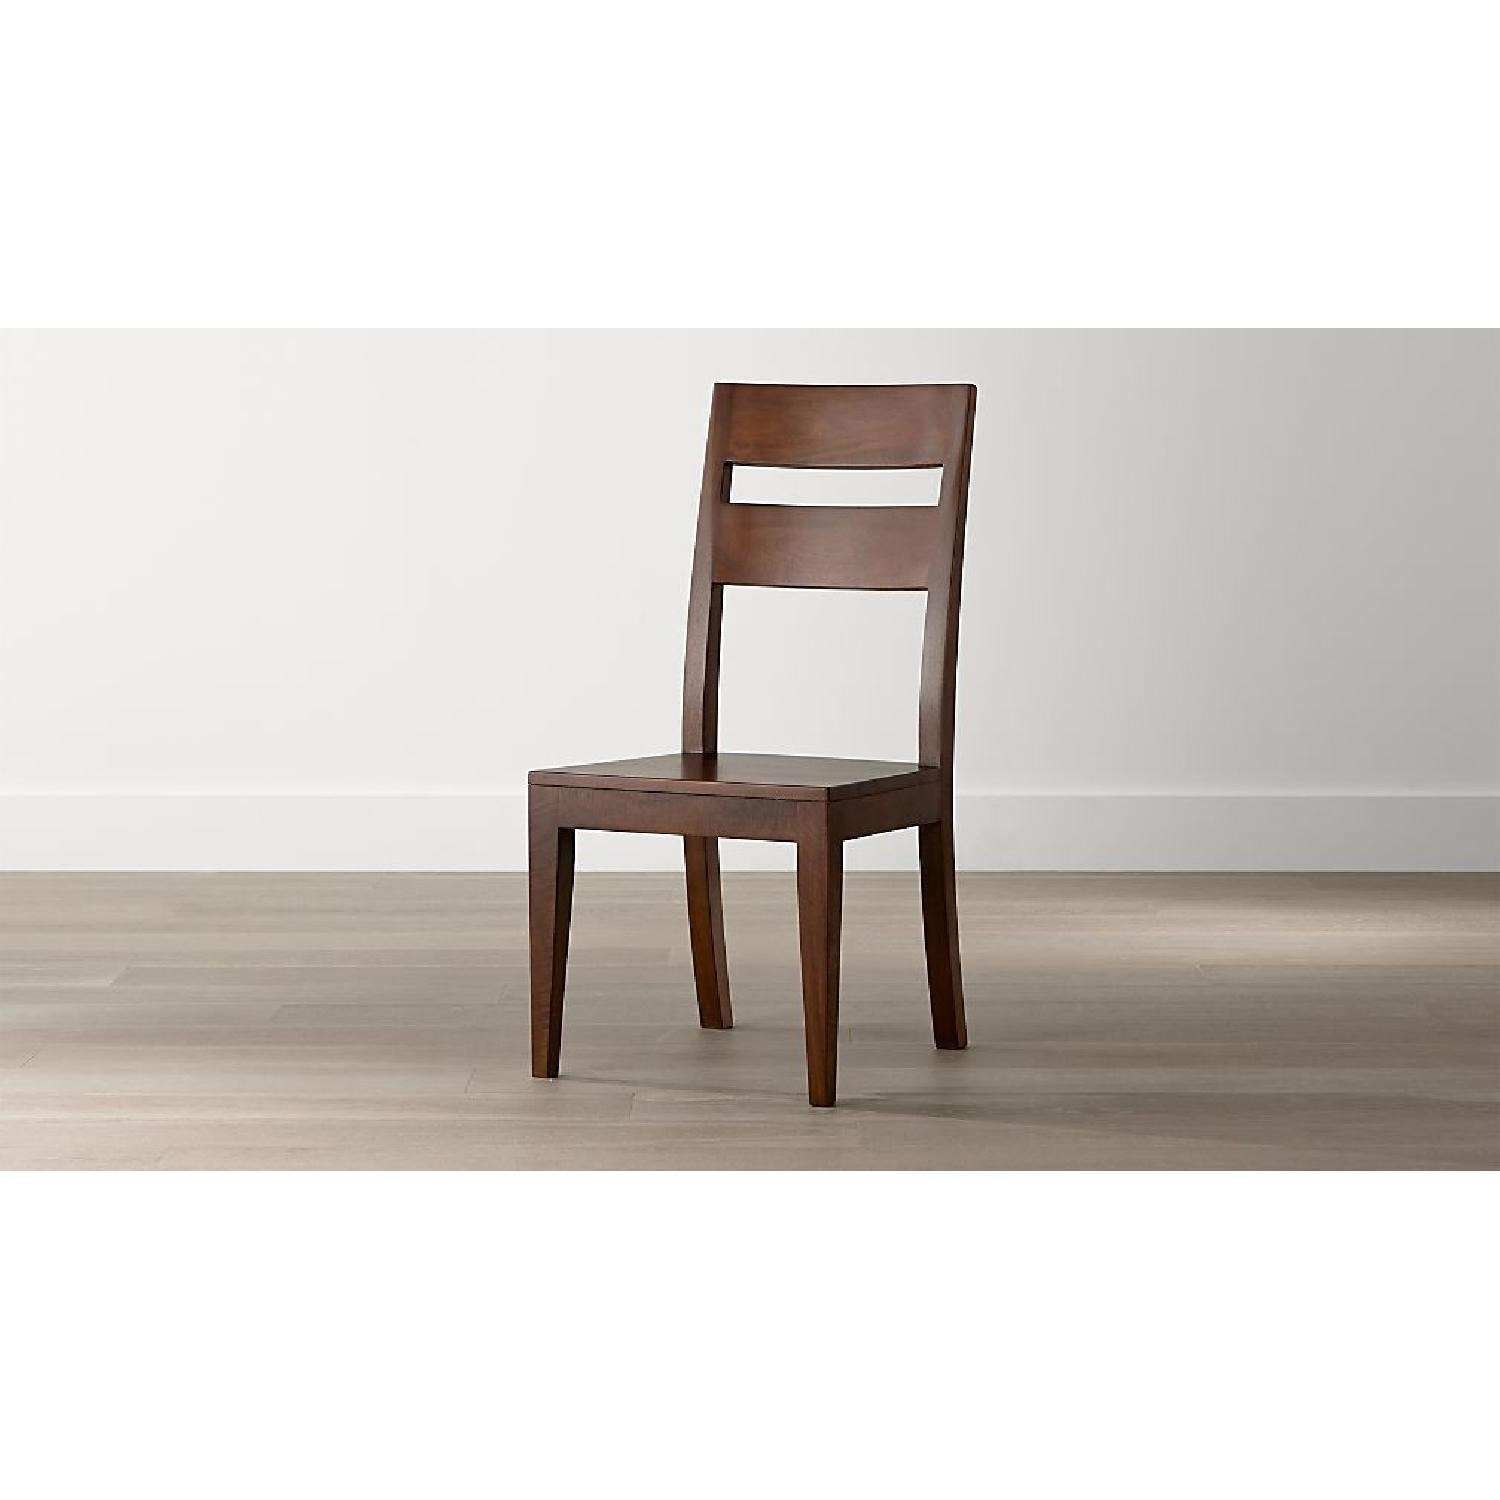 Crate & Barrel Basque Wood Dining Chairs - image-1